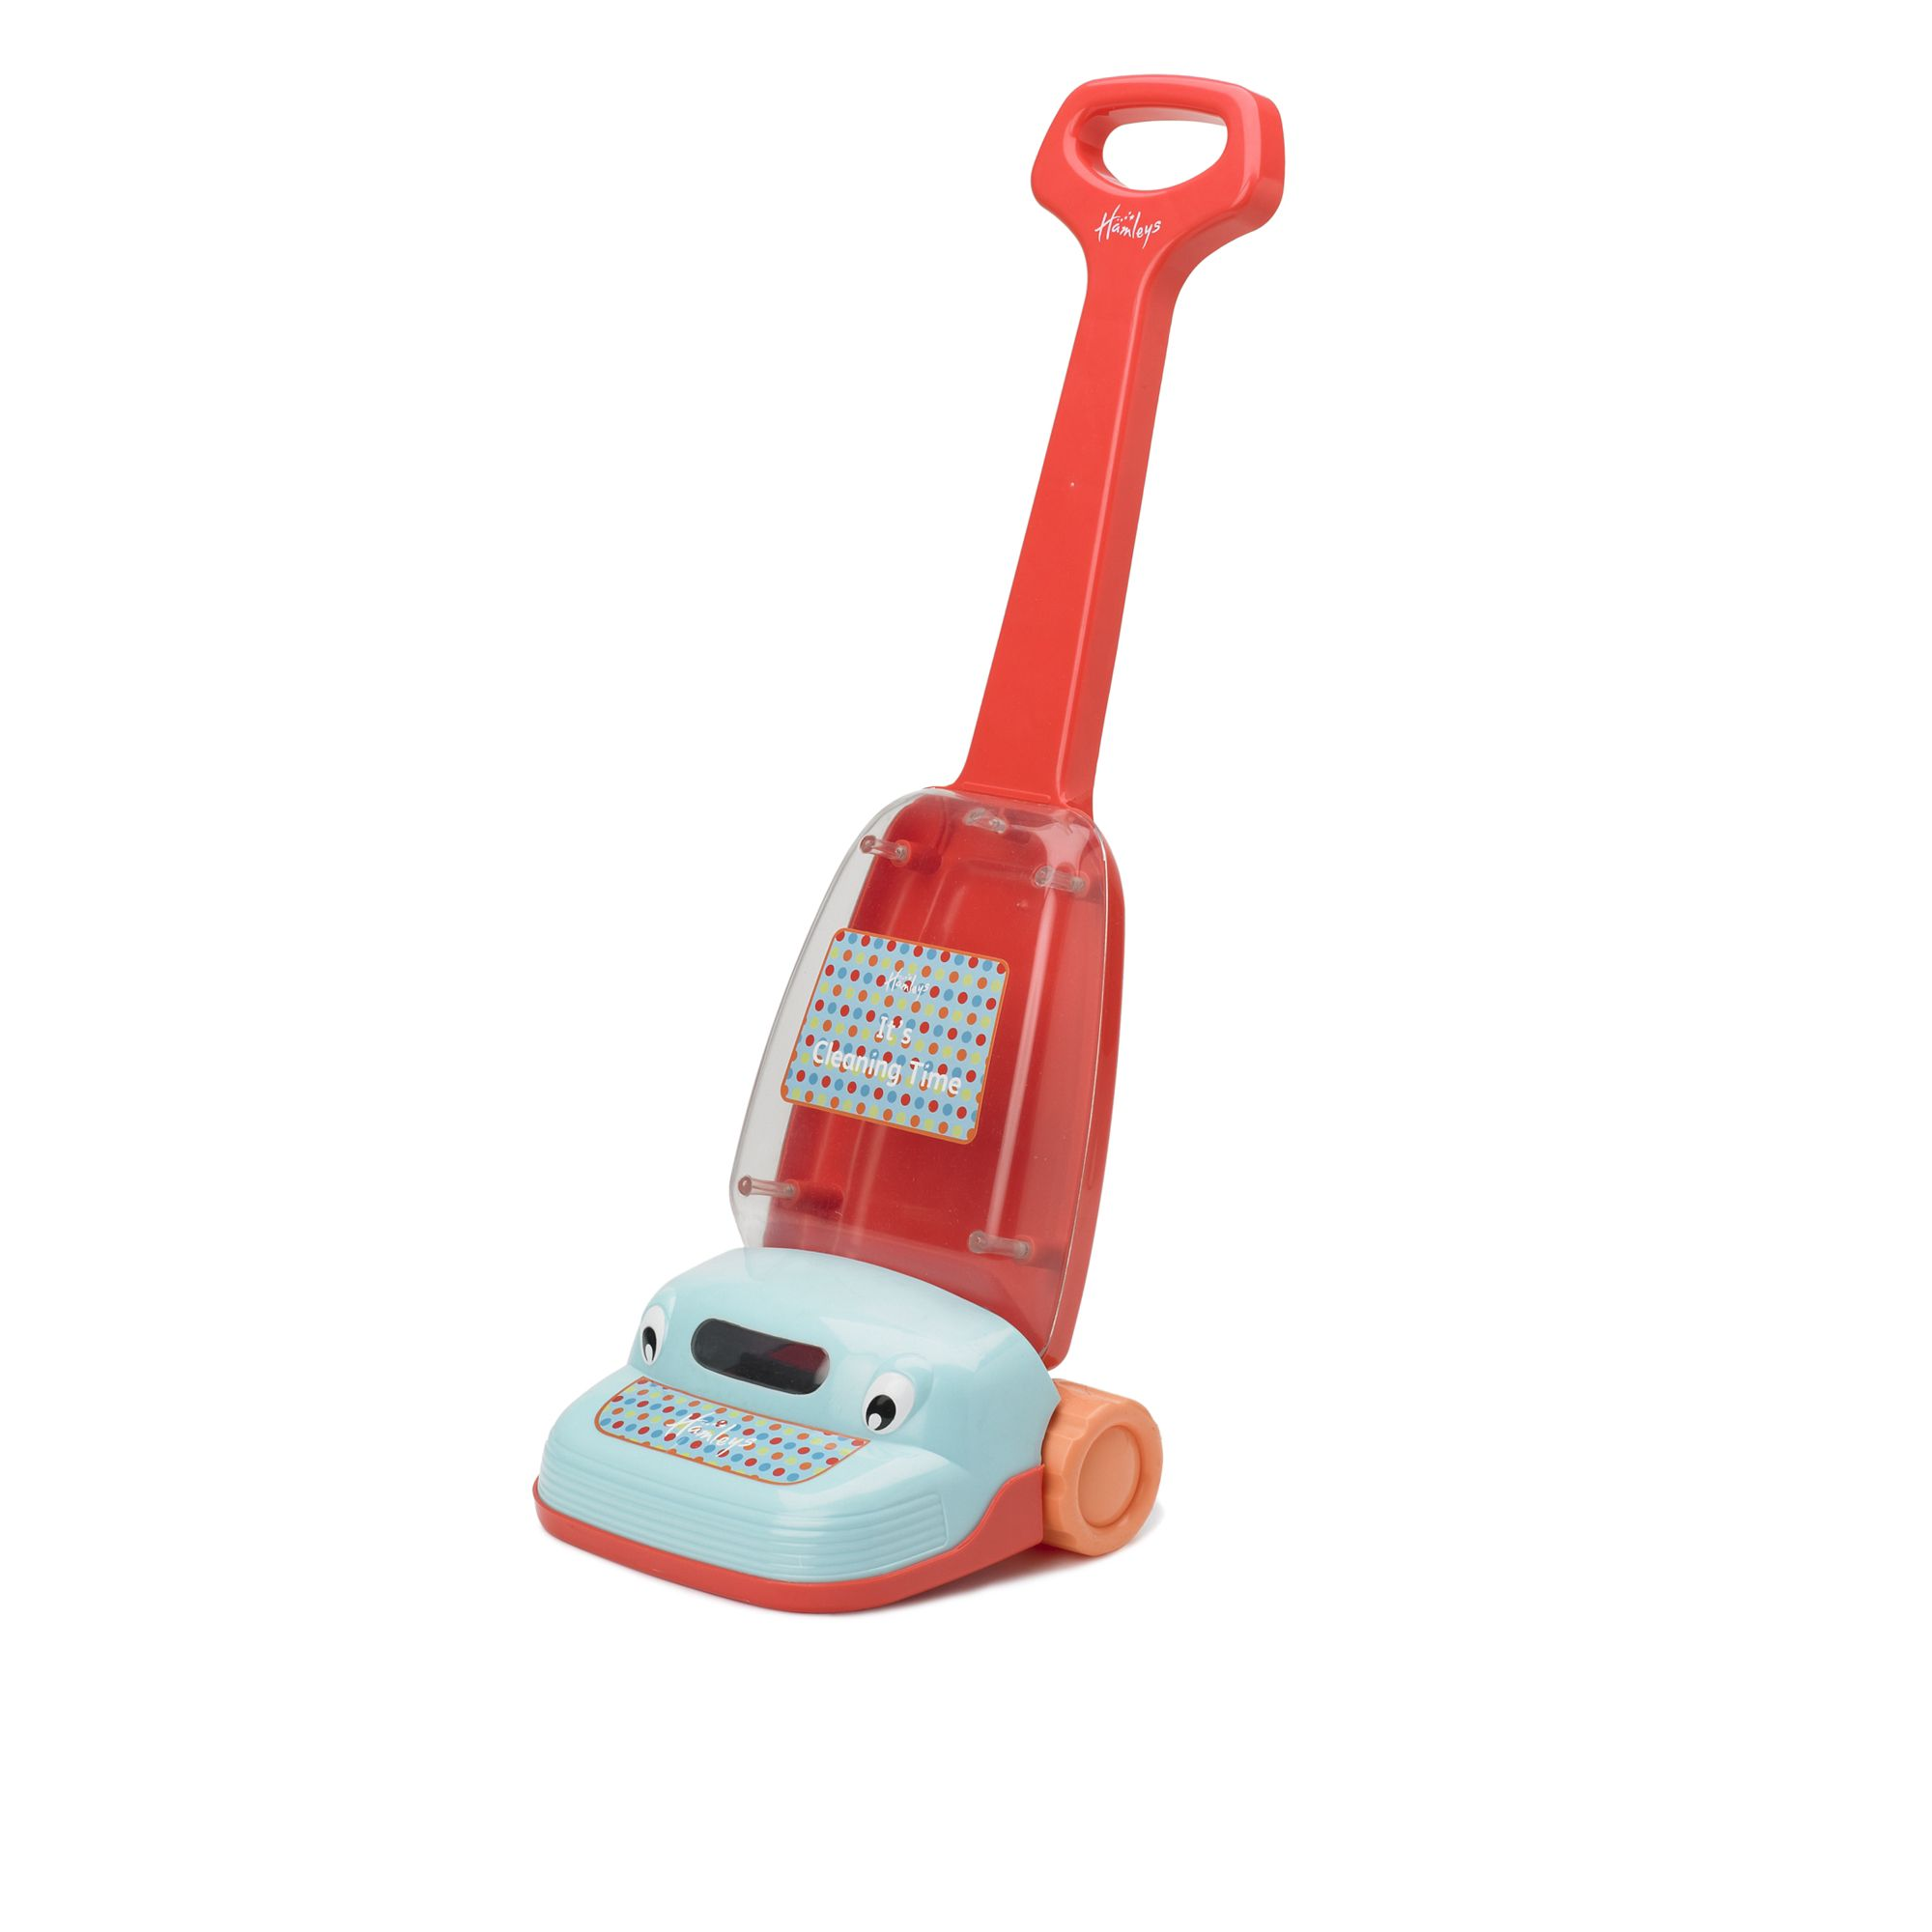 Hamleys Vacuum cleaner, N/A